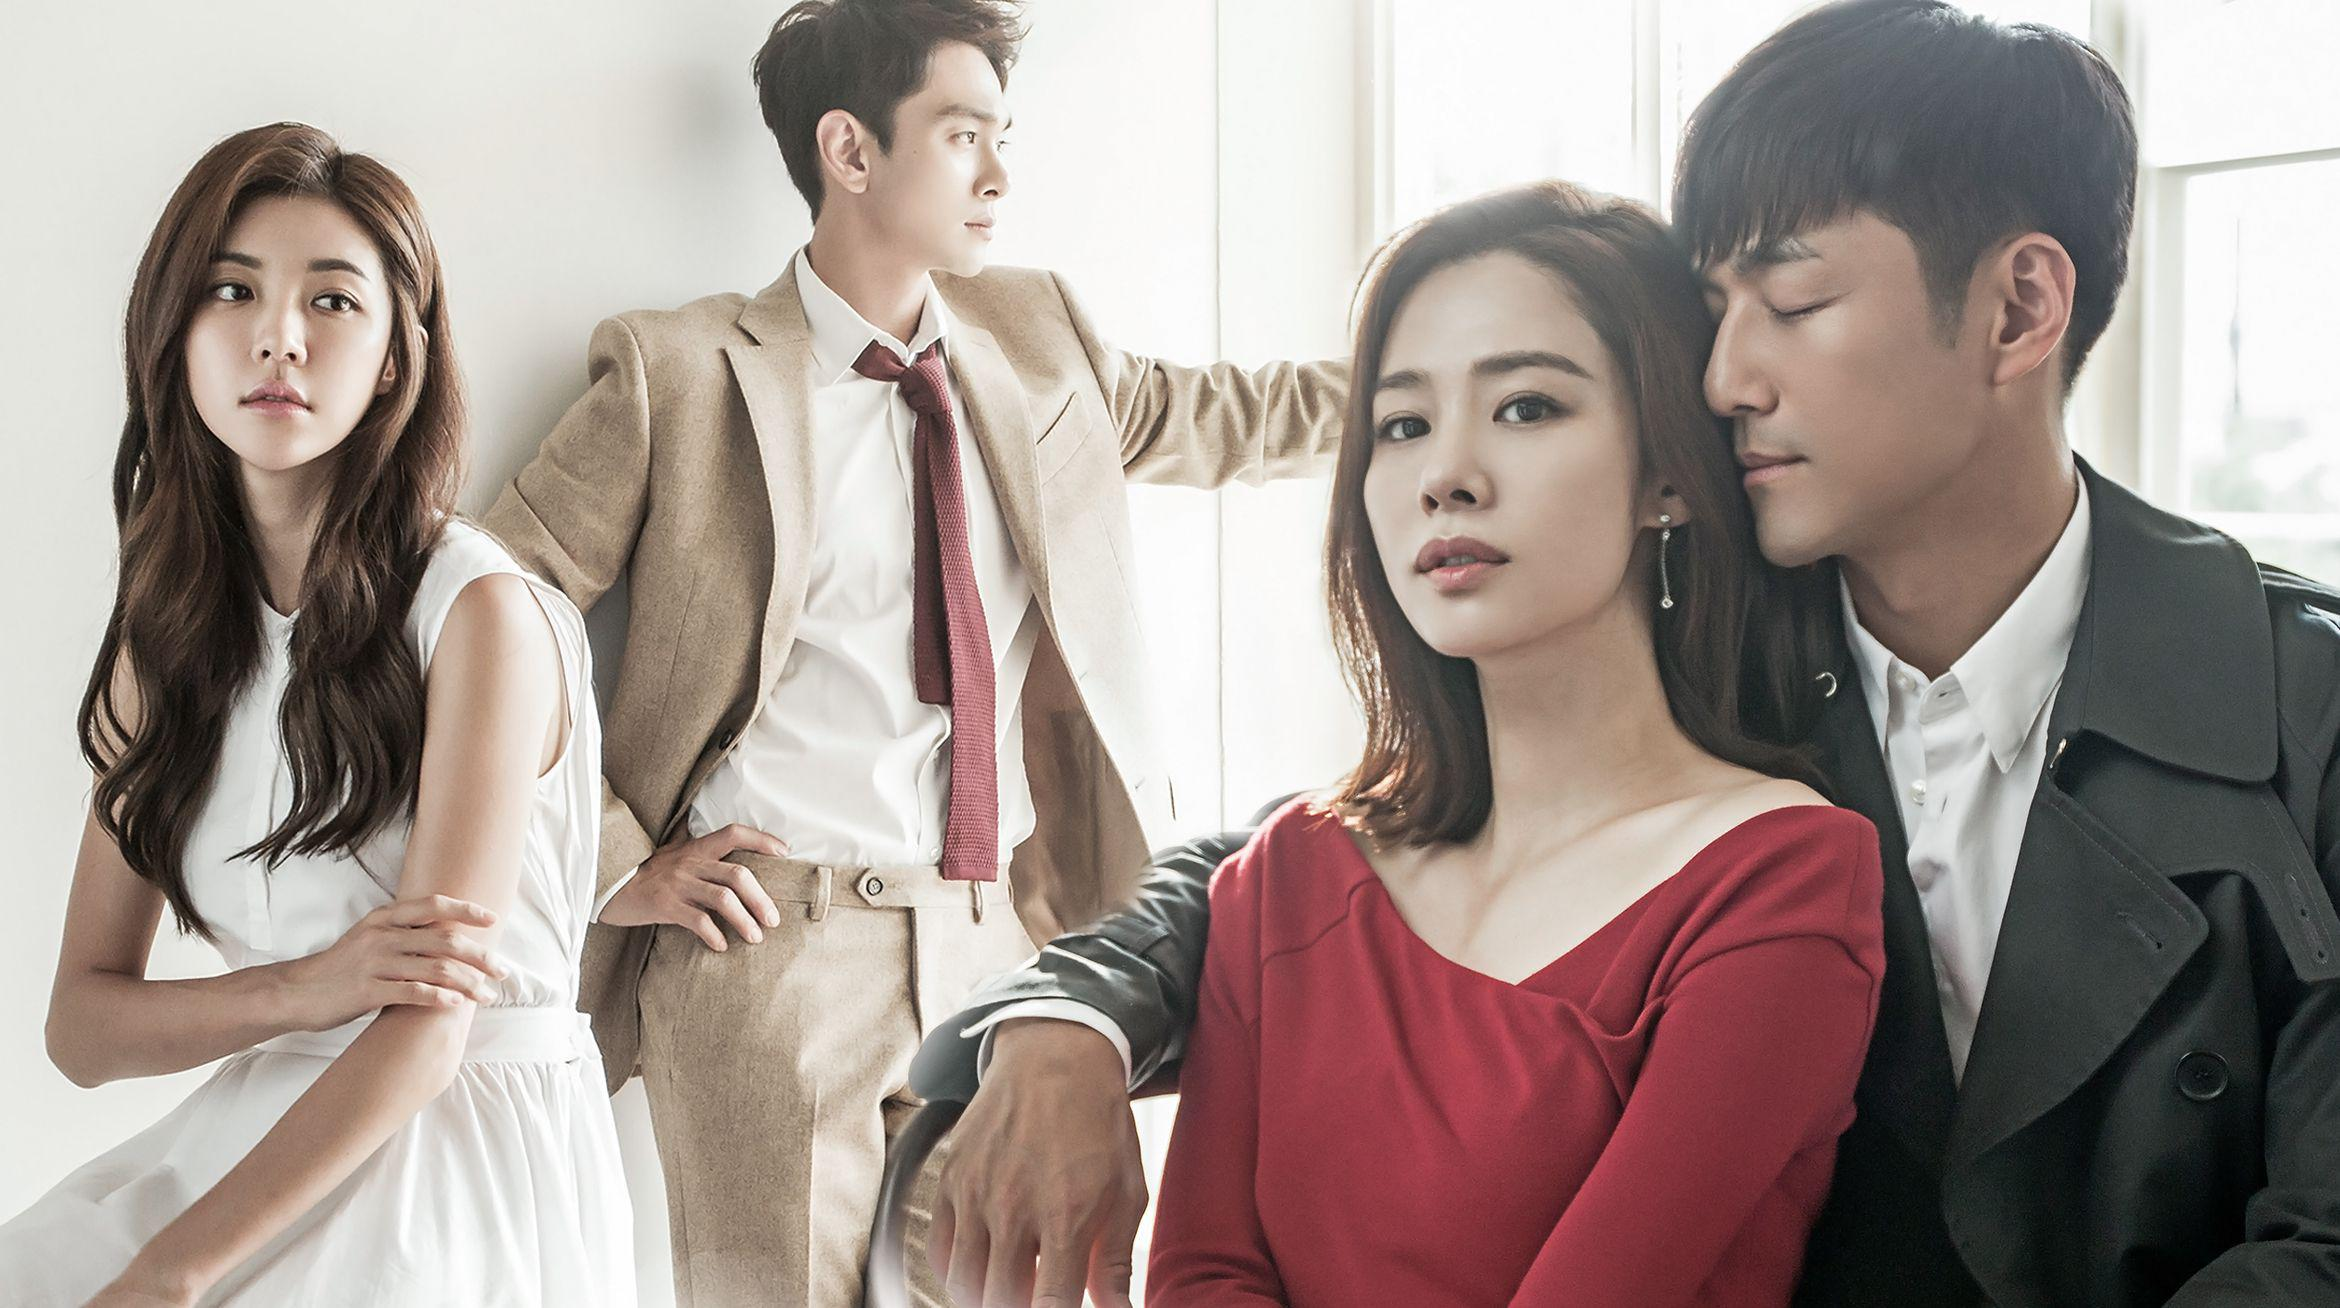 I Have a Lover Episode 2 - 애인있어요 - Watch Full Episodes